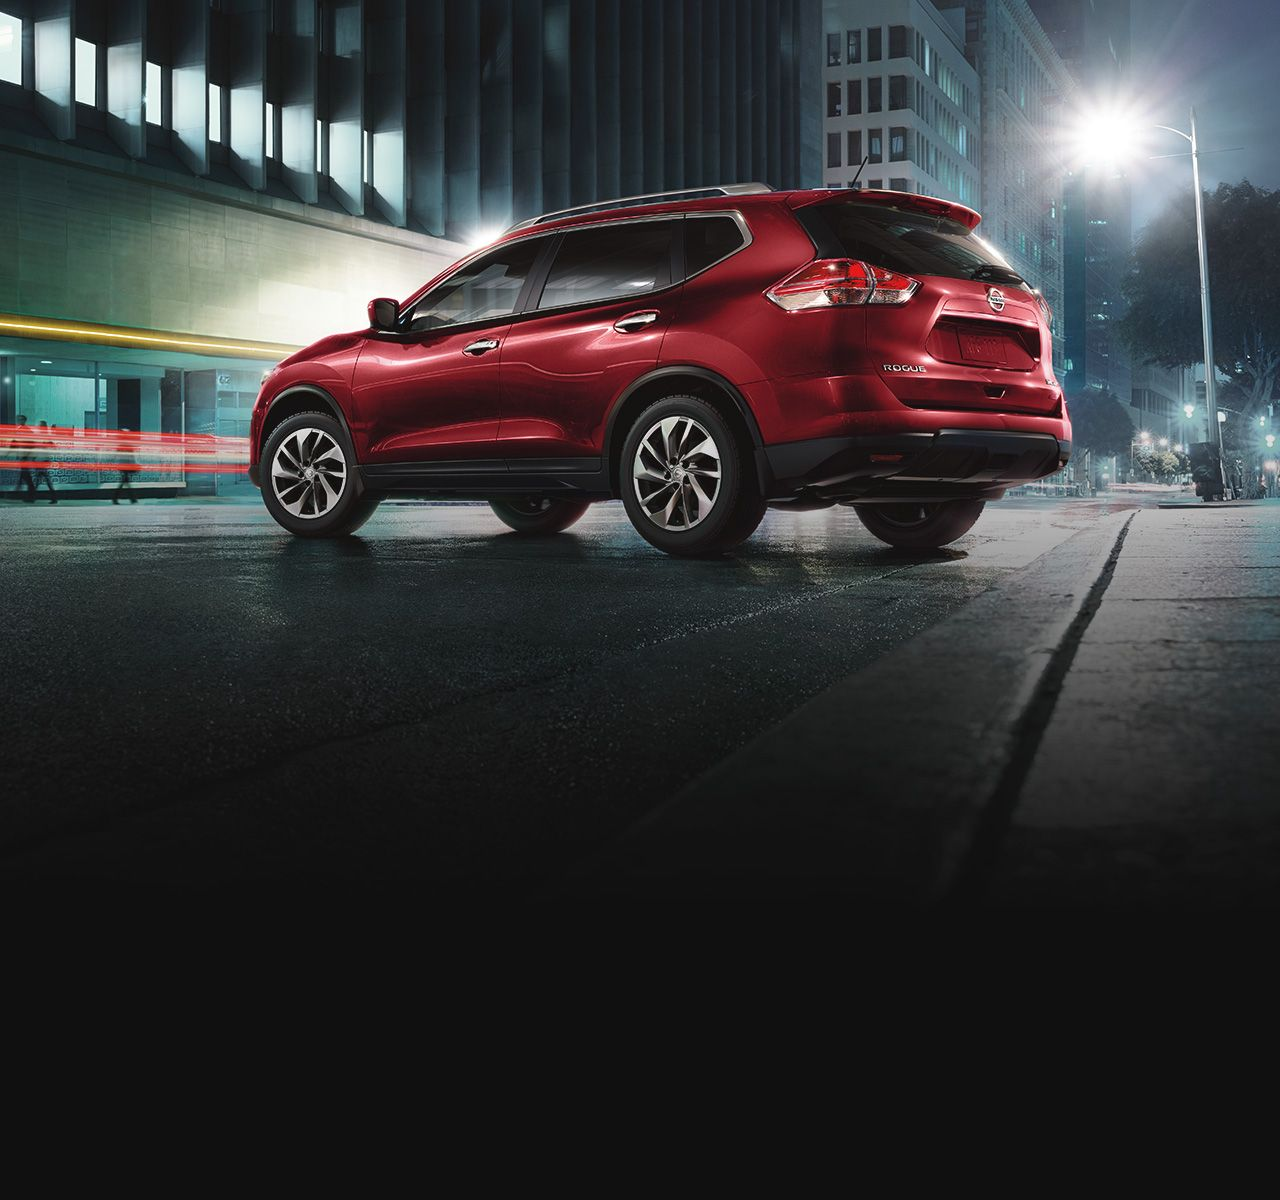 Nissan Rogue SL AWD rear side profile shown in Cayenne Red